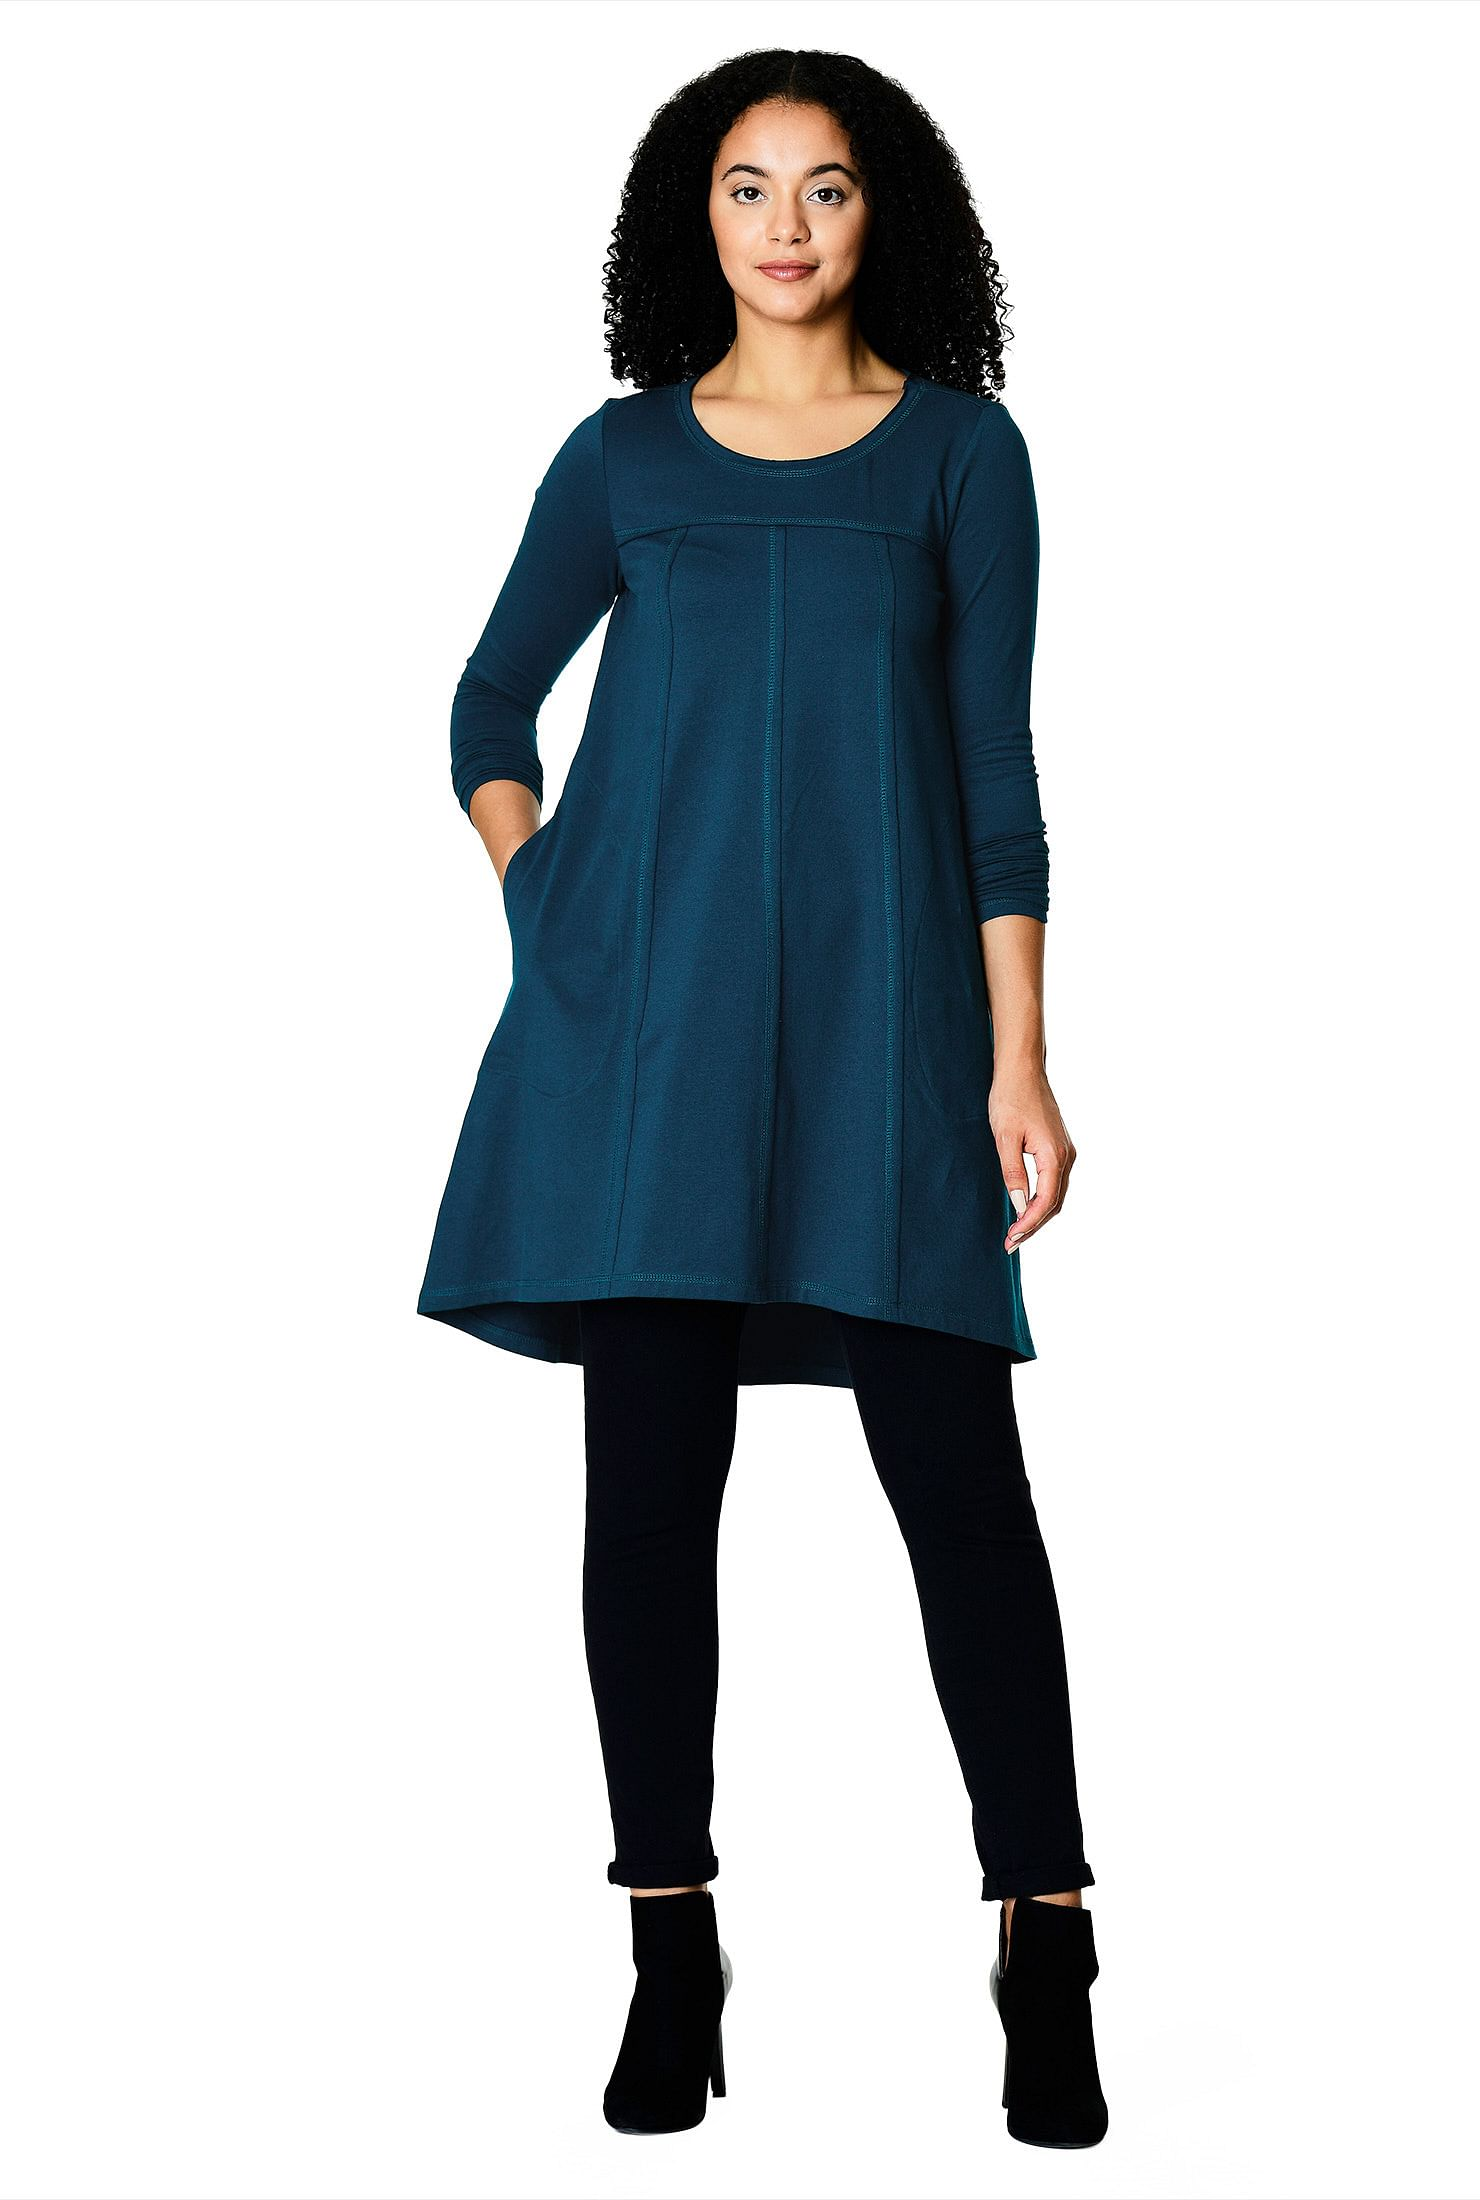 8713cb8a38f banded high scoop neck tops, High-low hem tops, long sleeves tops